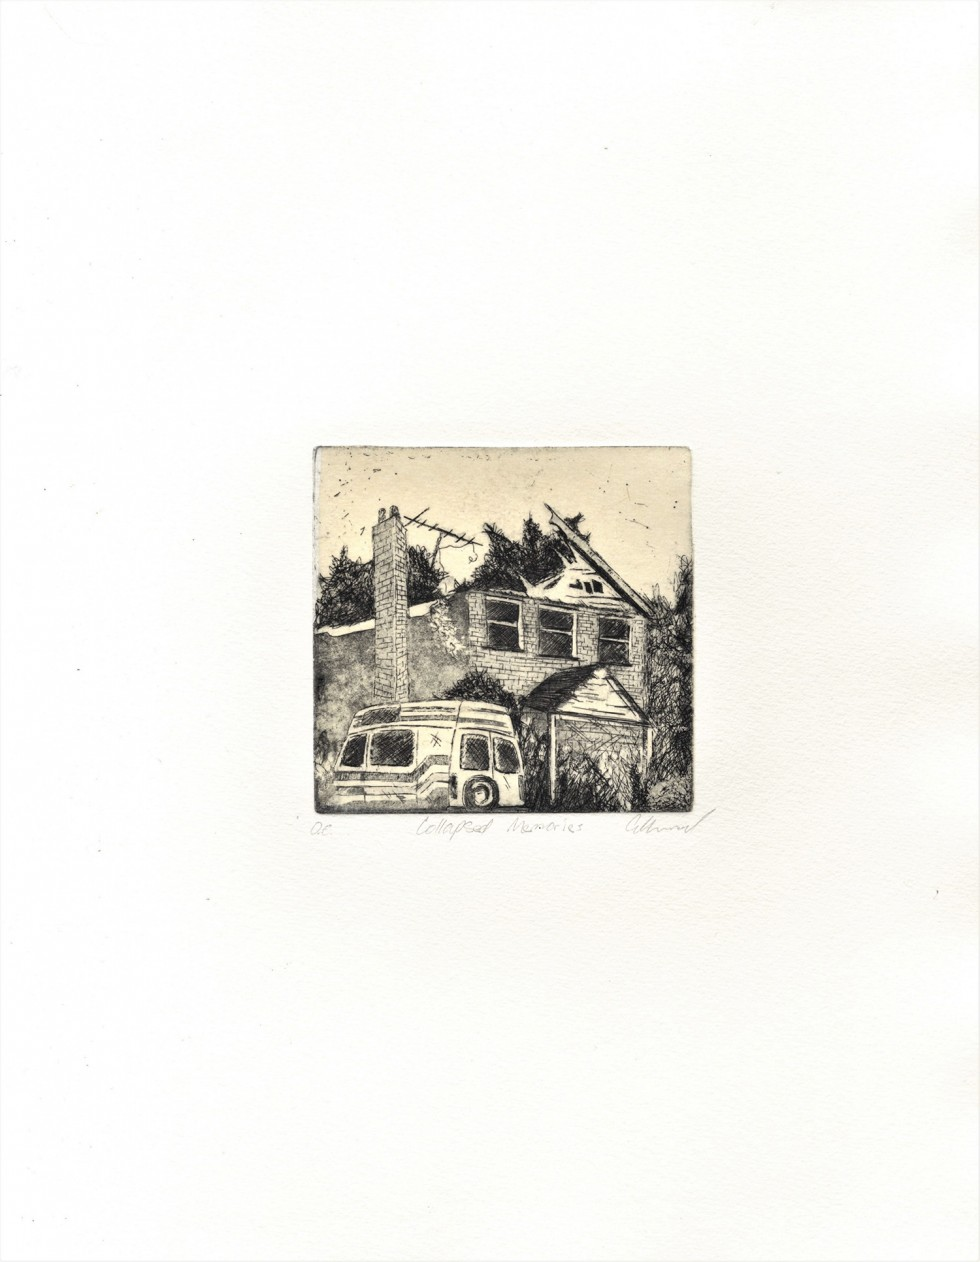 Small copper etchings of various abandoned buildings I have photographed over the years.